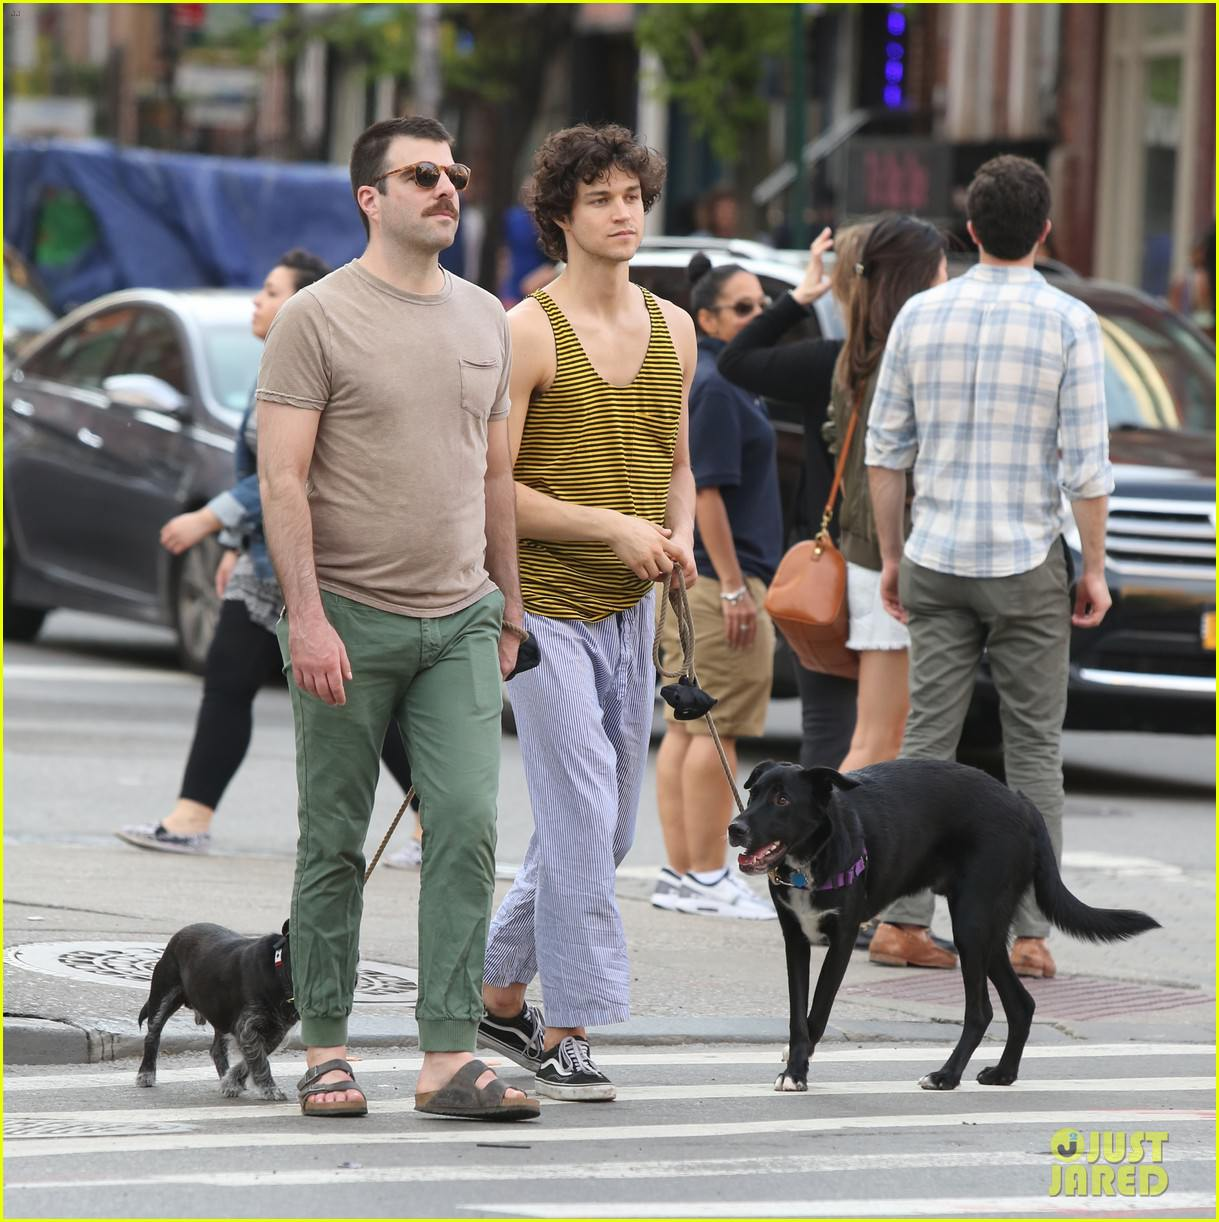 zachary-quinto-boyfriend-miles-mcmillan-kiss-during-dog-walk-01